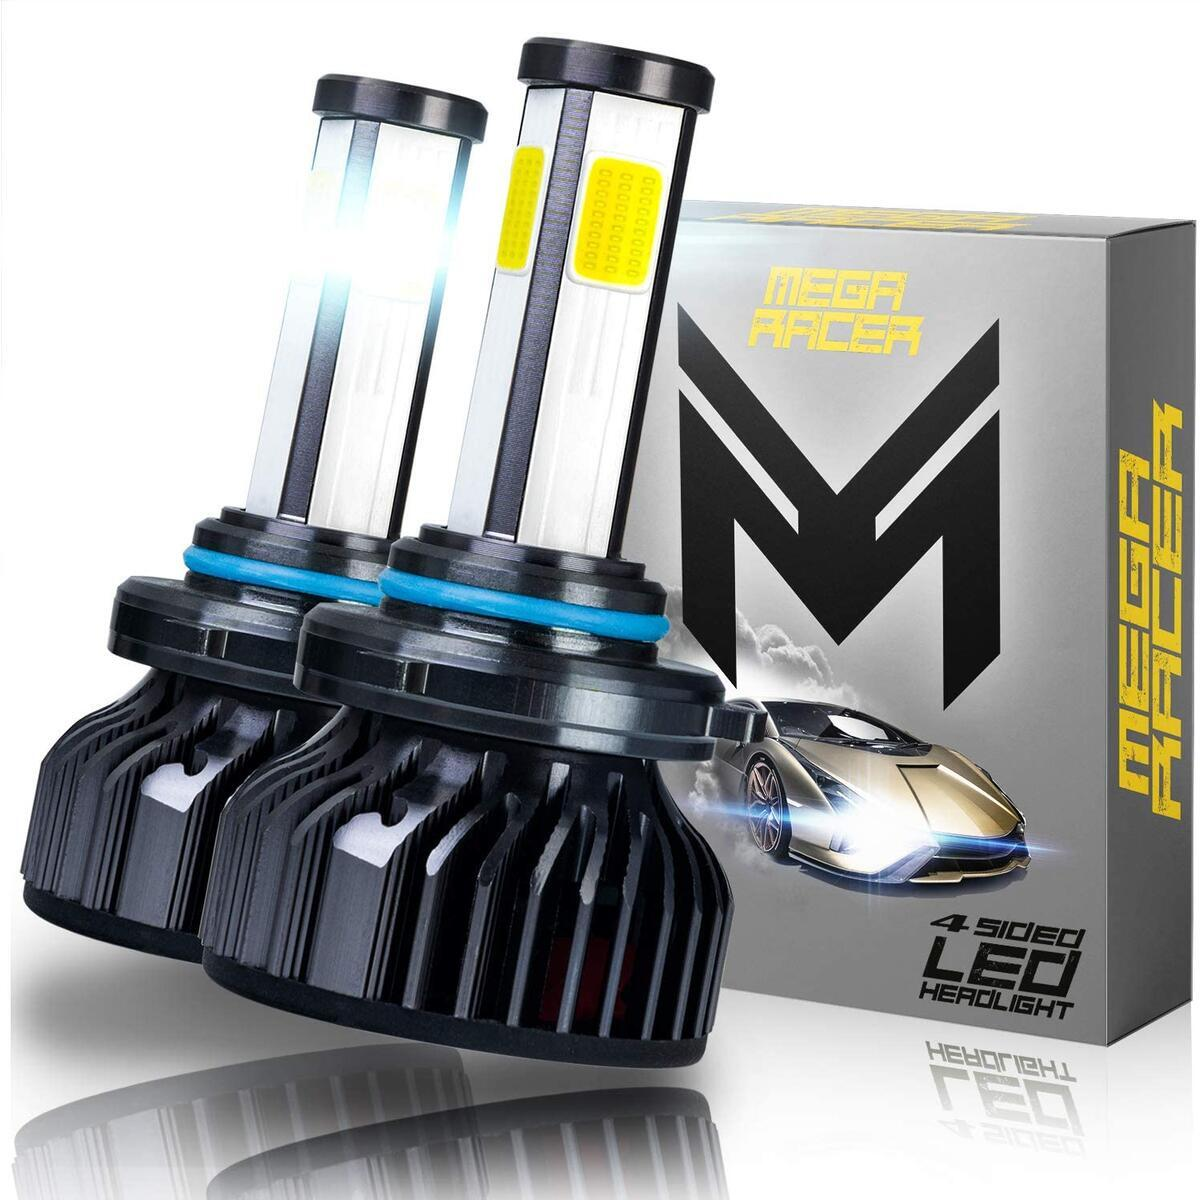 Mega Racer 4 Sided 9005/H10/HB3 LED Headlight Bulb - High Beam, Fog Light, or Low Beam 60 Watt 6000K Diamond White 10000 LM COB IP68 Waterproof Rating, 2 Pieces